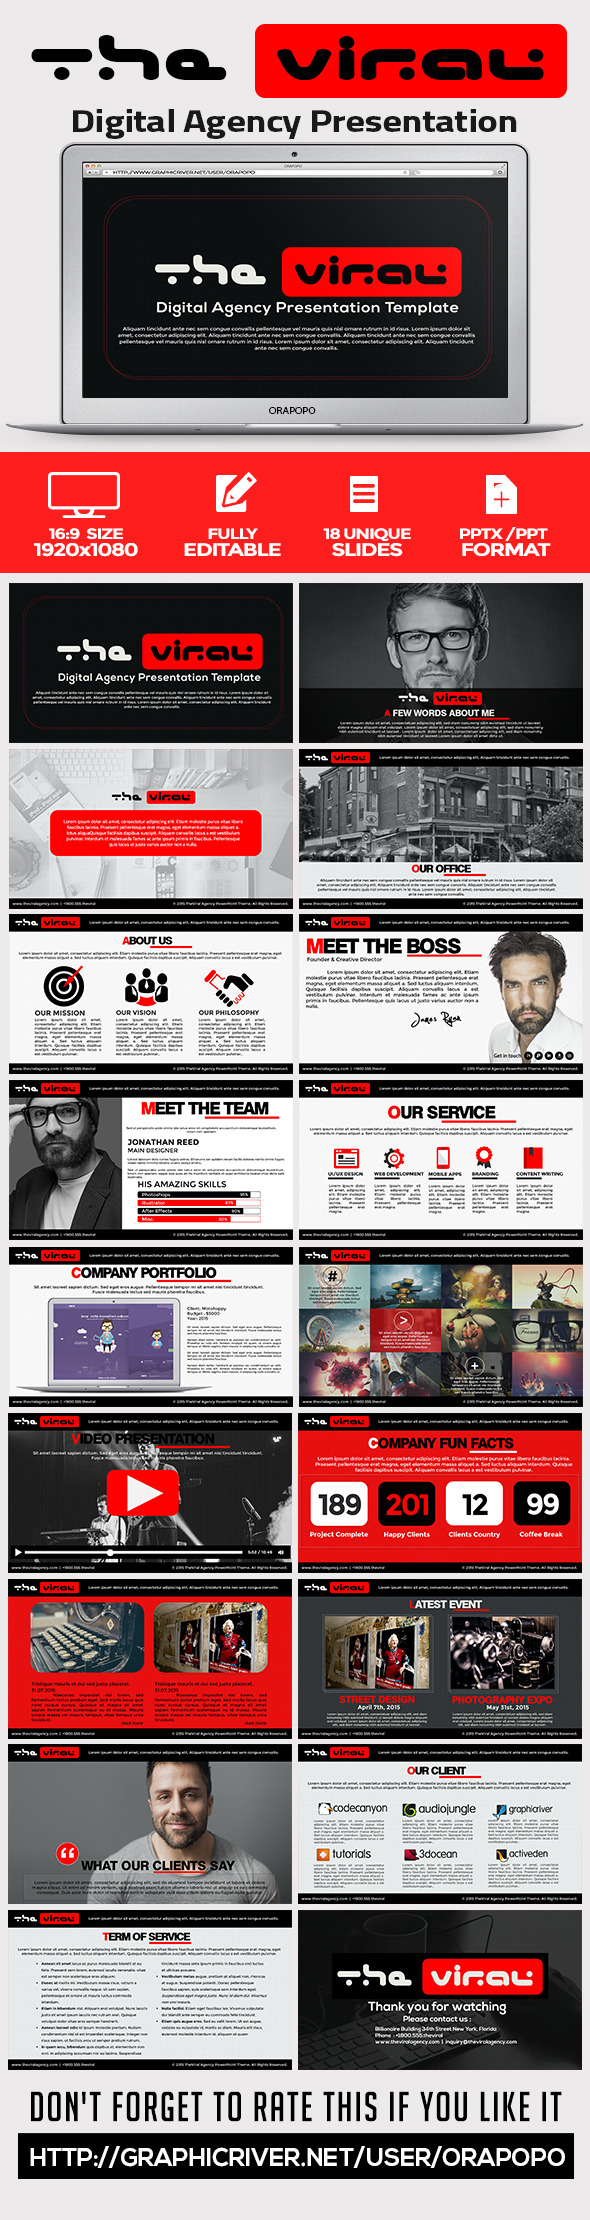 GraphicRiver The Viral Digital Agency Presentation Template 11452475